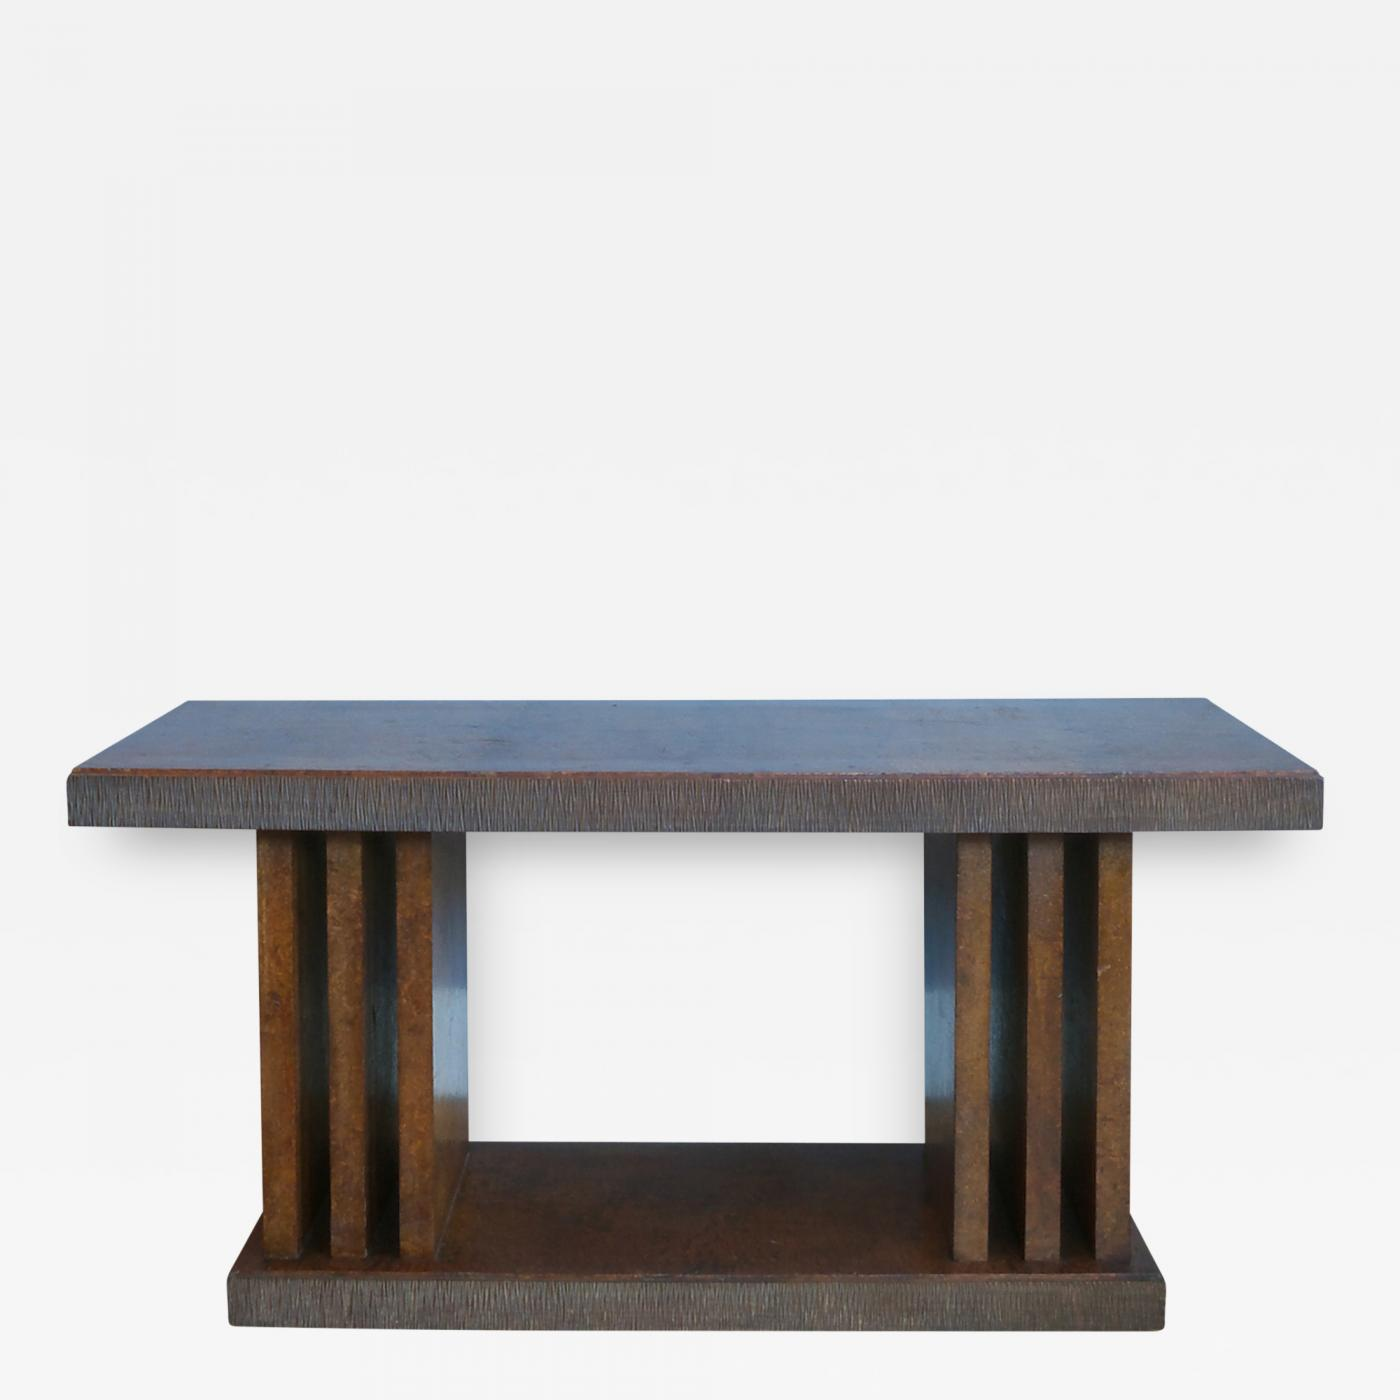 Pier luigi colli a console table and bench listings furniture tables console pier tables geotapseo Image collections